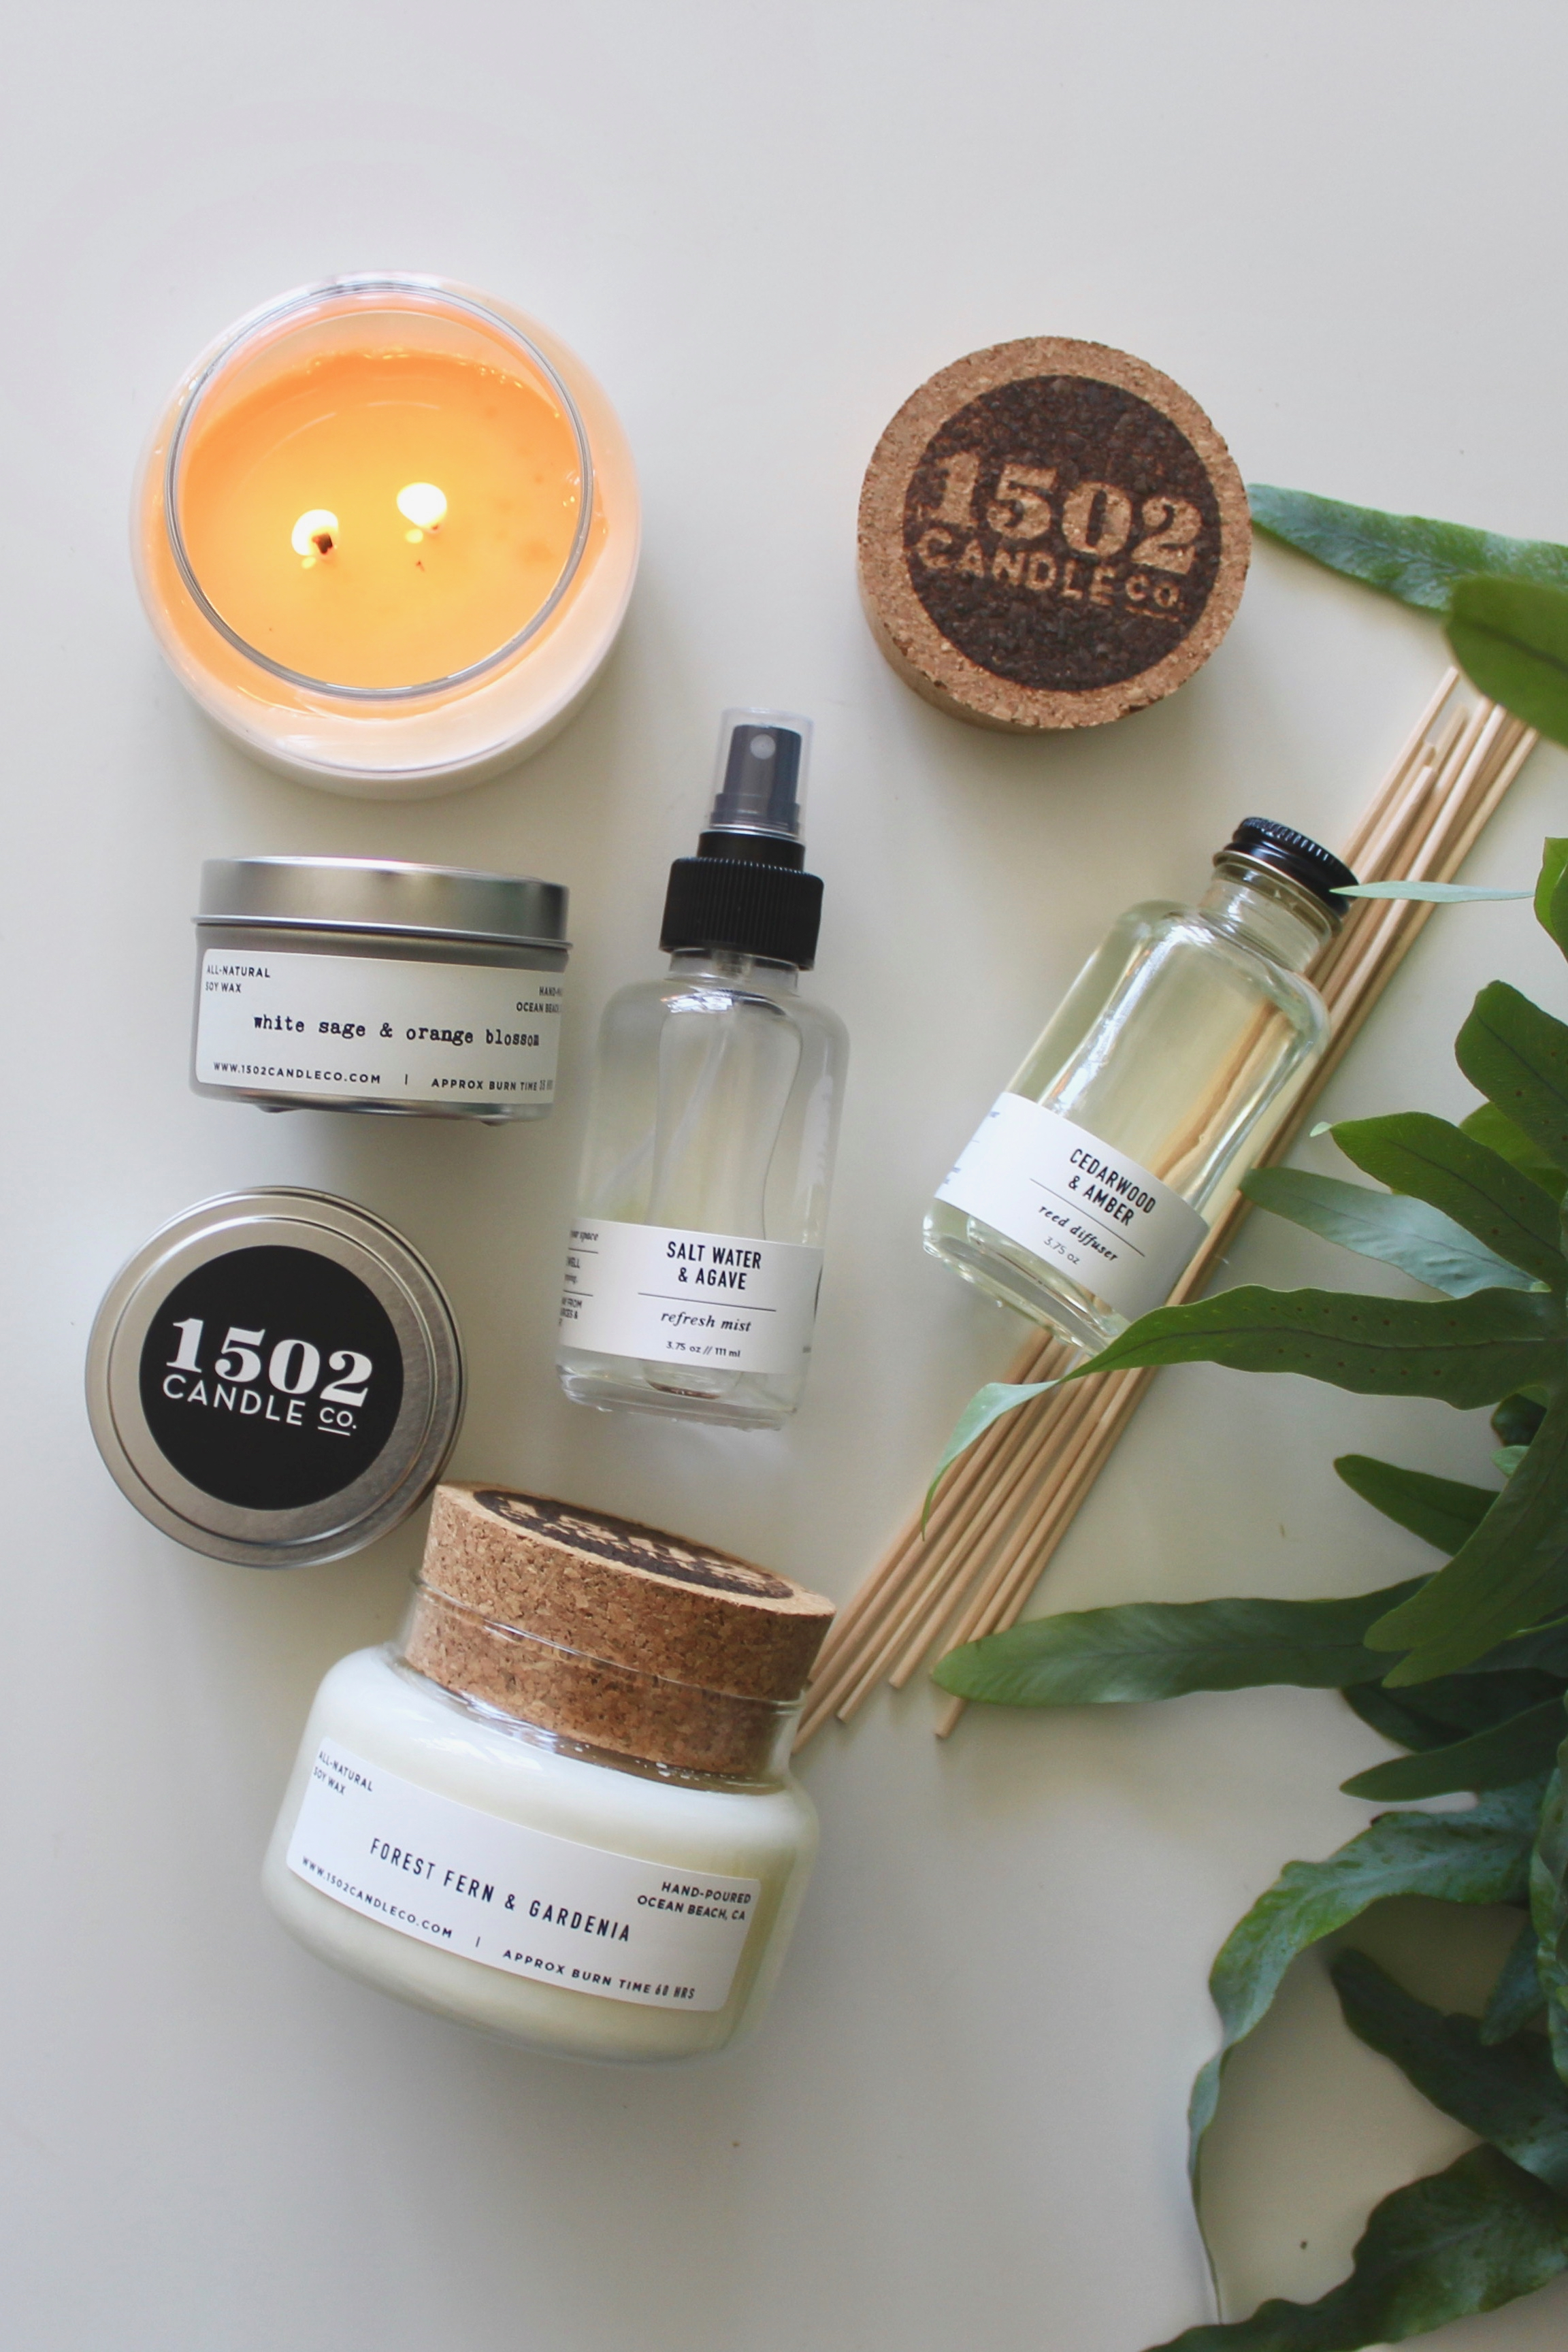 1502 Candle Co.